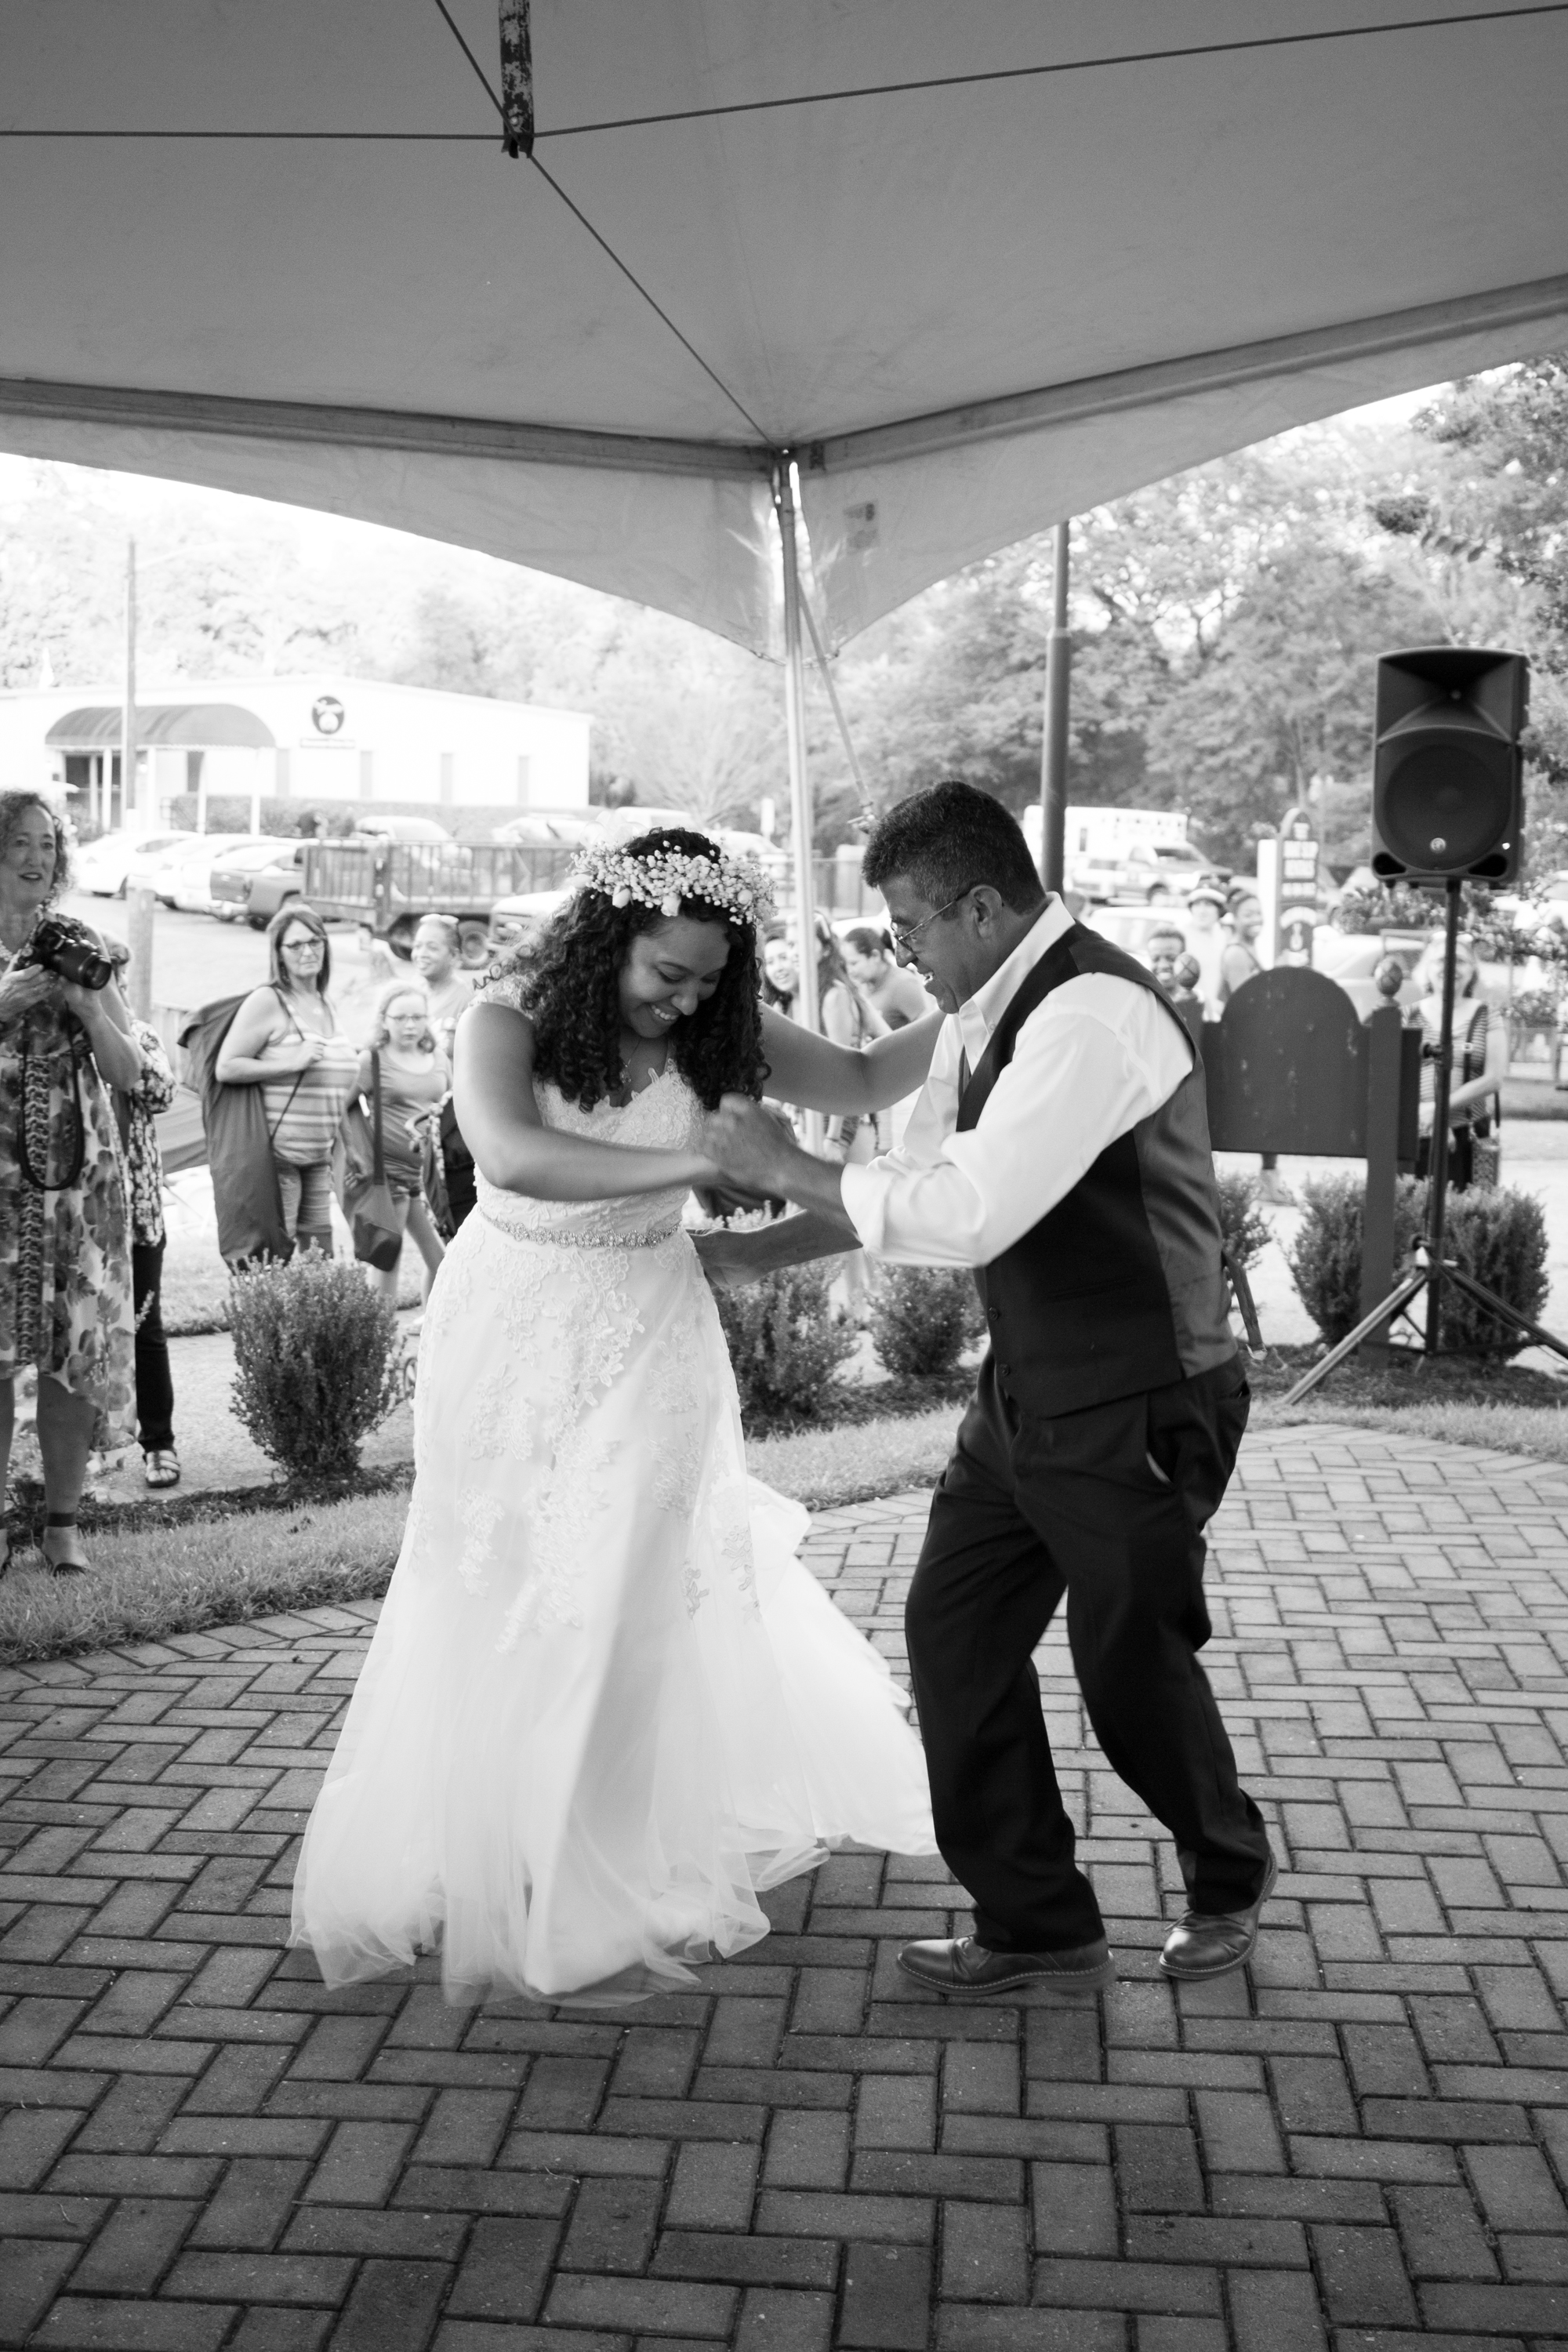 Cathy and Chris Wedding Photos - Black and White - by Brittany Castillo Meadow Portraits (7 of 21).jpg